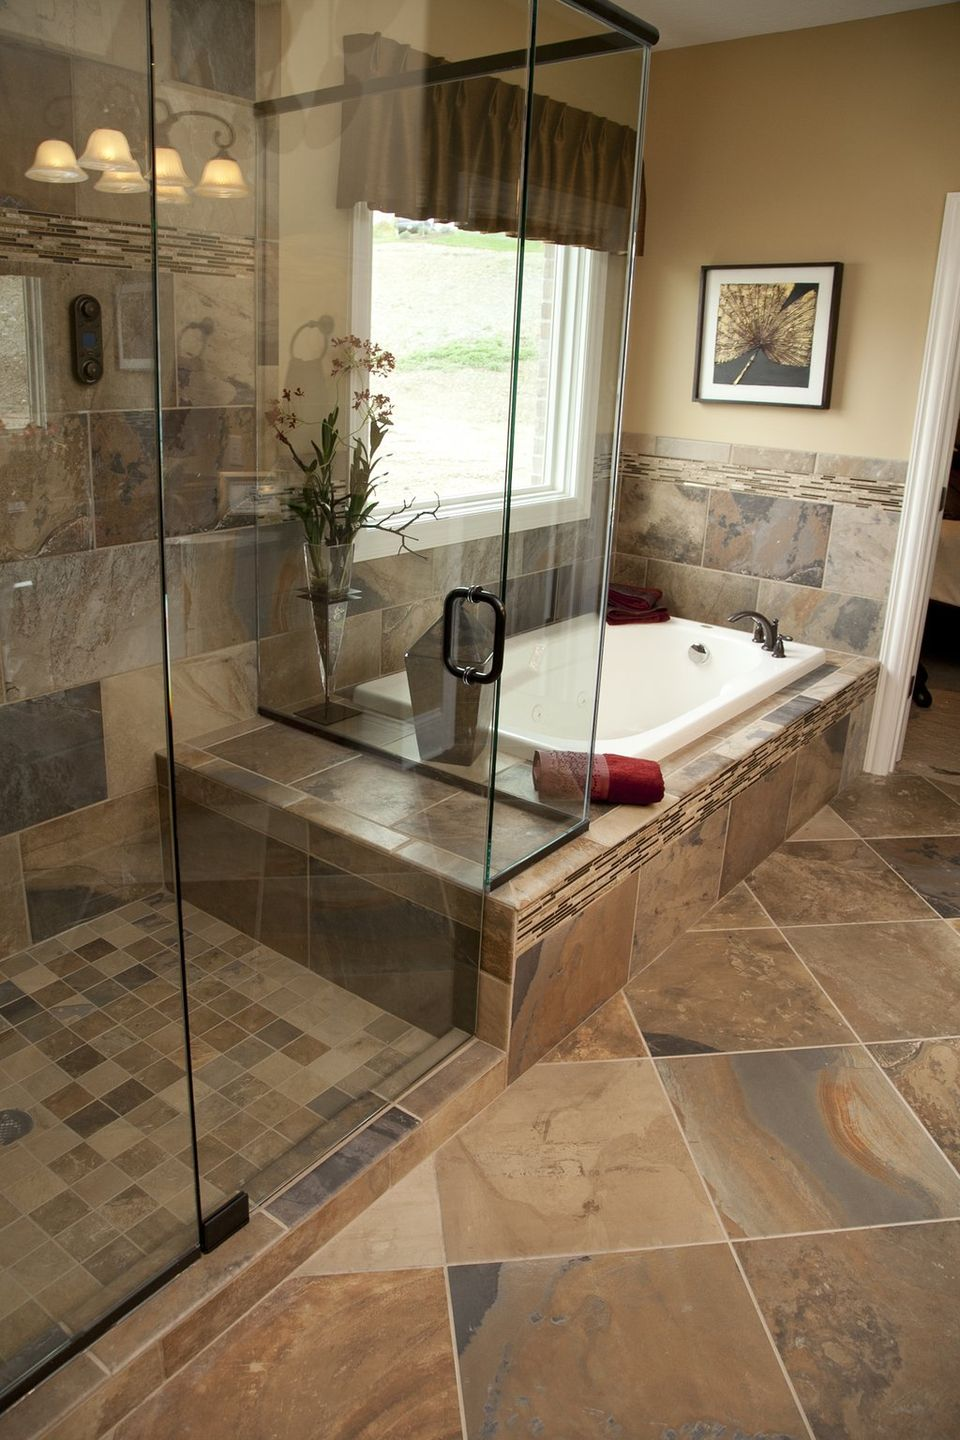 33 stunning pictures and ideas of natural stone bathroom for Images of bathroom tile ideas